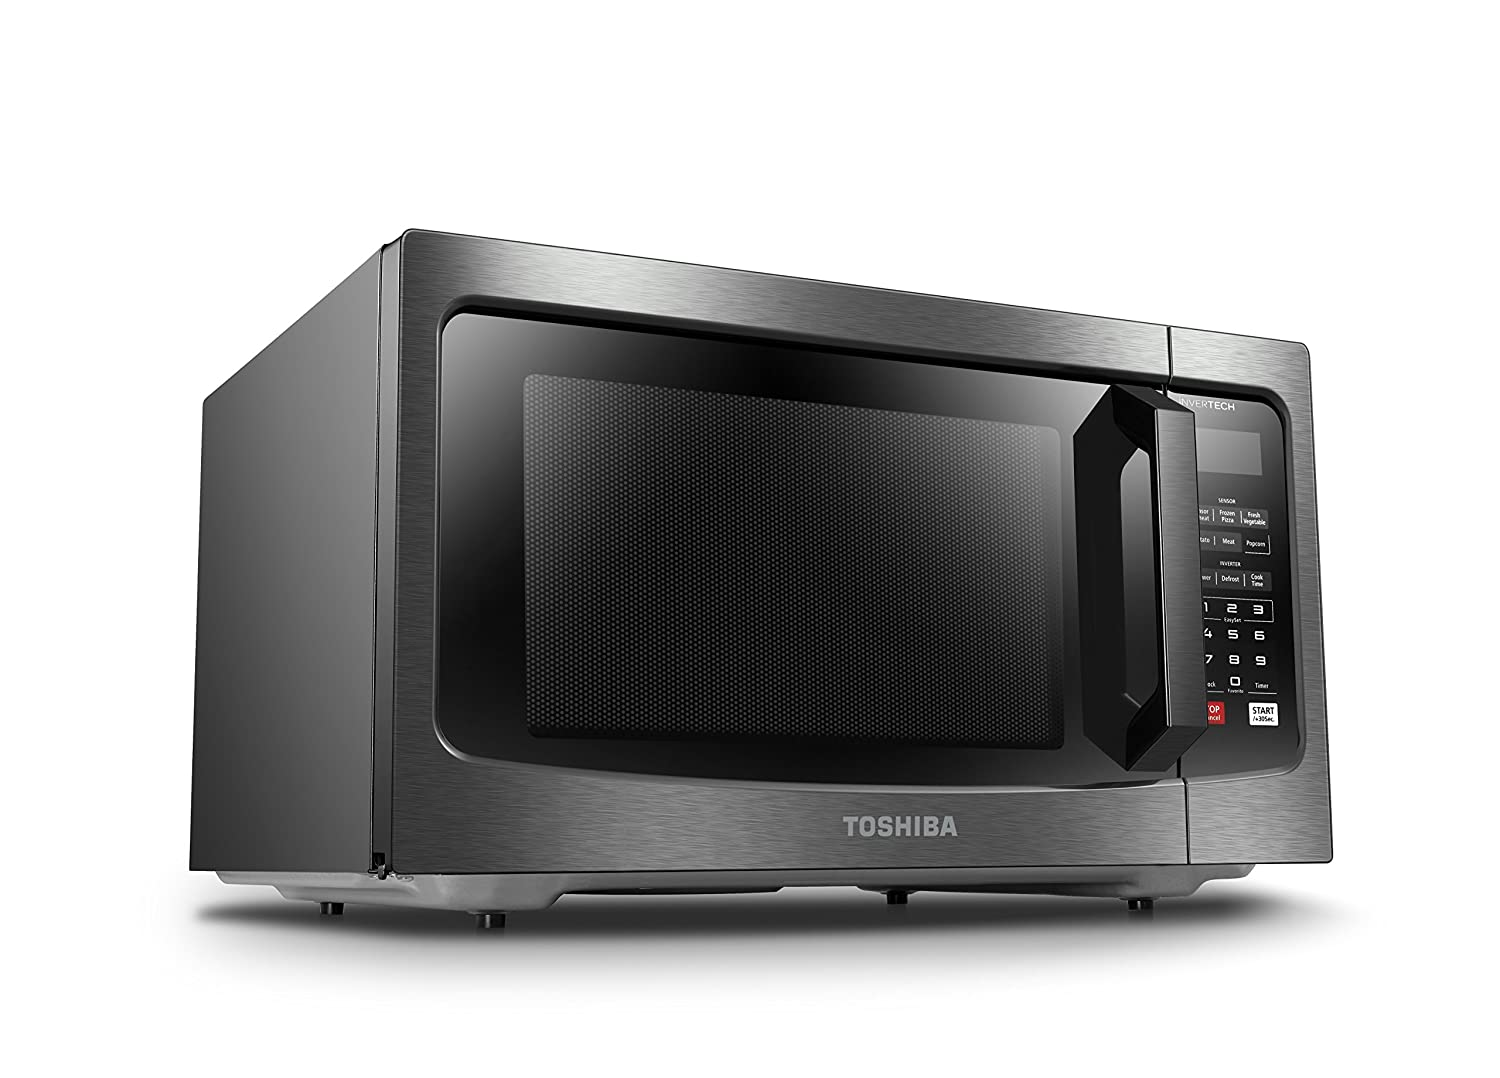 Toshiba EM245A5C-SS Microwave Oven with Inverter Technology Stainless Steel MIDEA 1.6 Cu.ft//1250W LCD Display and Smart Sensor